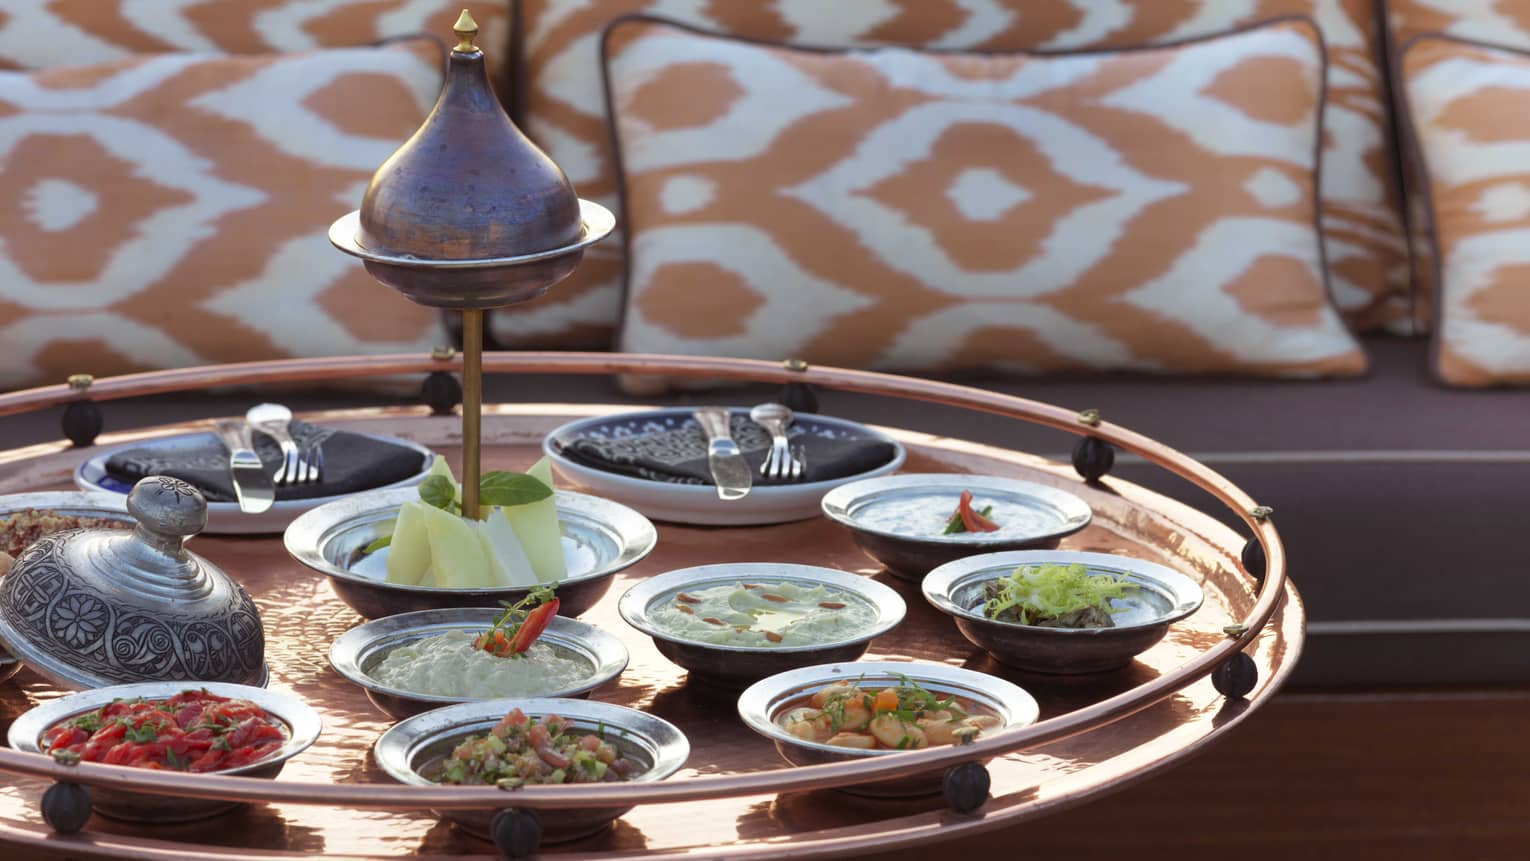 Mezze appetizers in small dishes on large brass tray